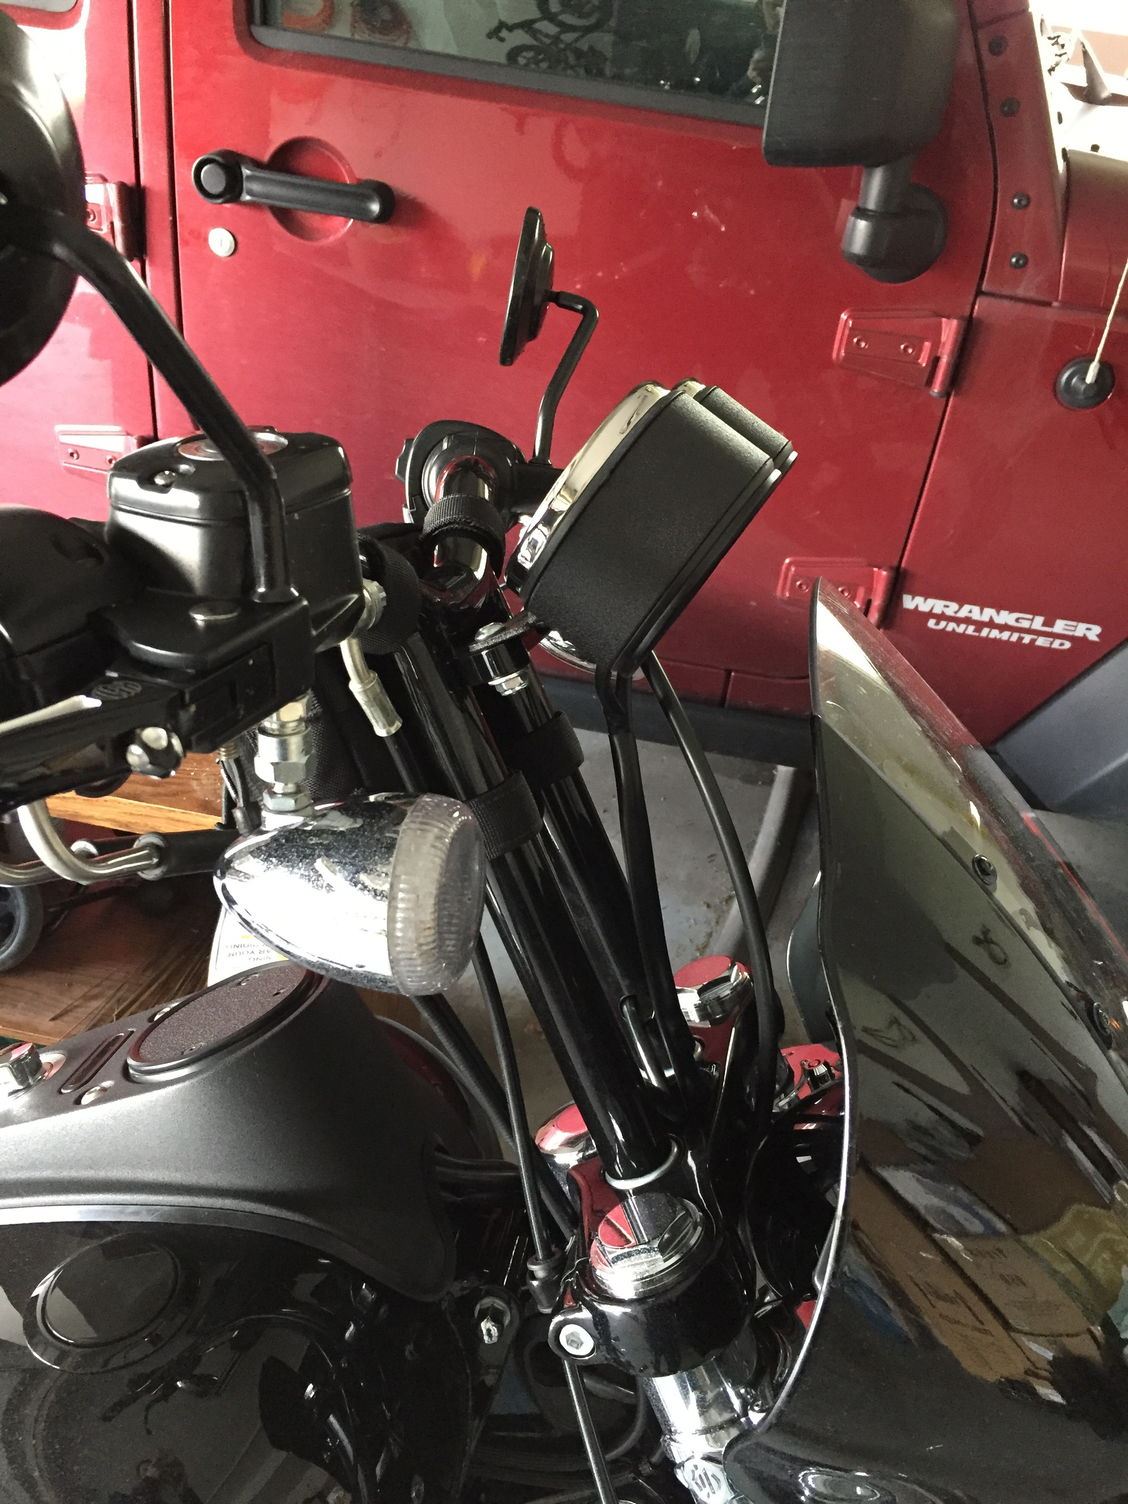 Dual Gauge Micky Mouse Set Up Quetions Page 37 Harley Davidson 2014 Fxdl Wiring Diagram Fuel Https Cimg0ibsrvnet Gimg Hdfd9d5a1c5a7